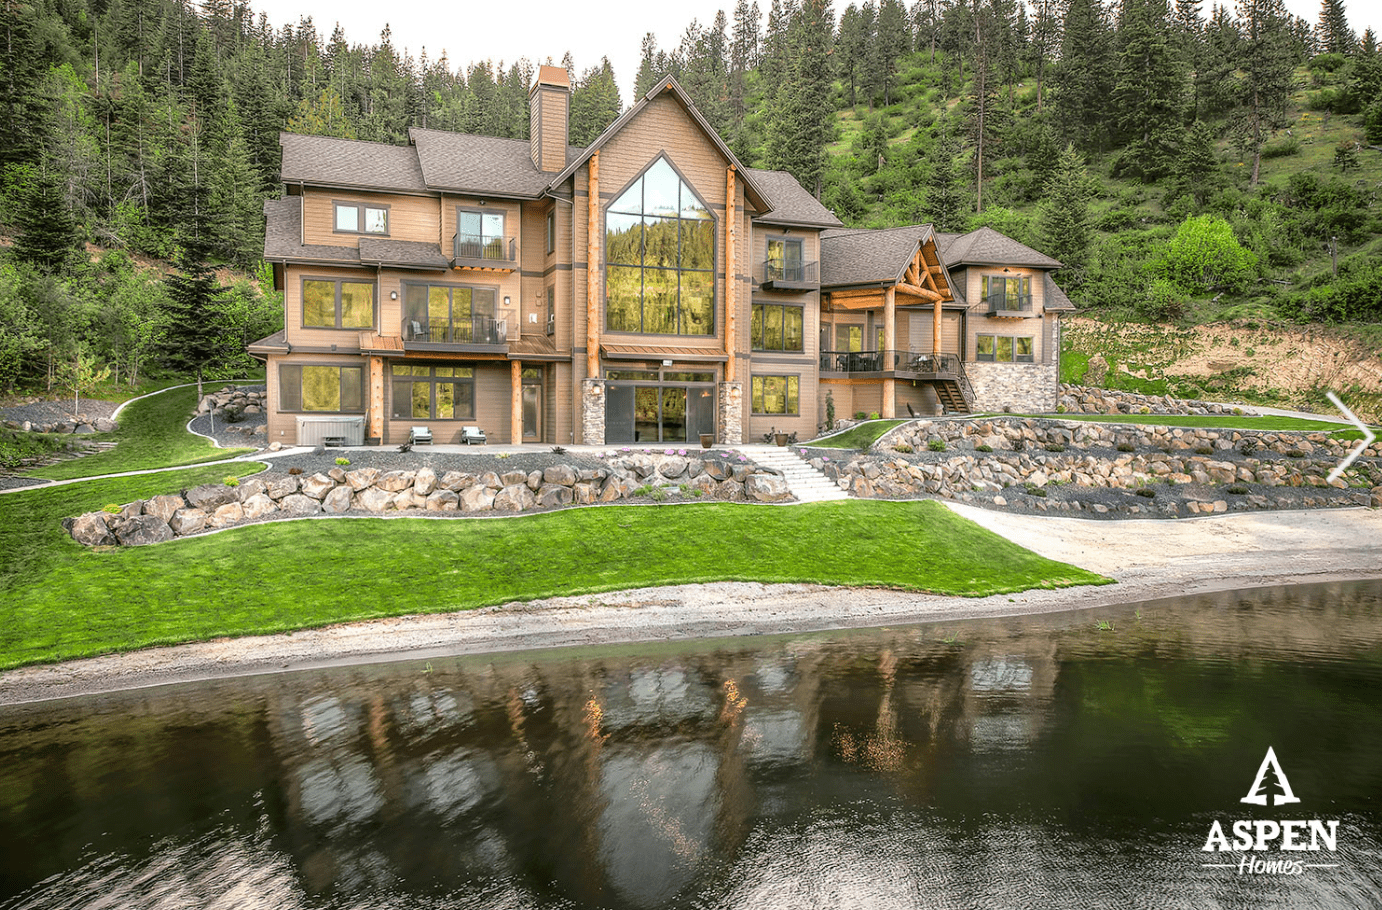 Aspen Homes example of custom built home on the lake